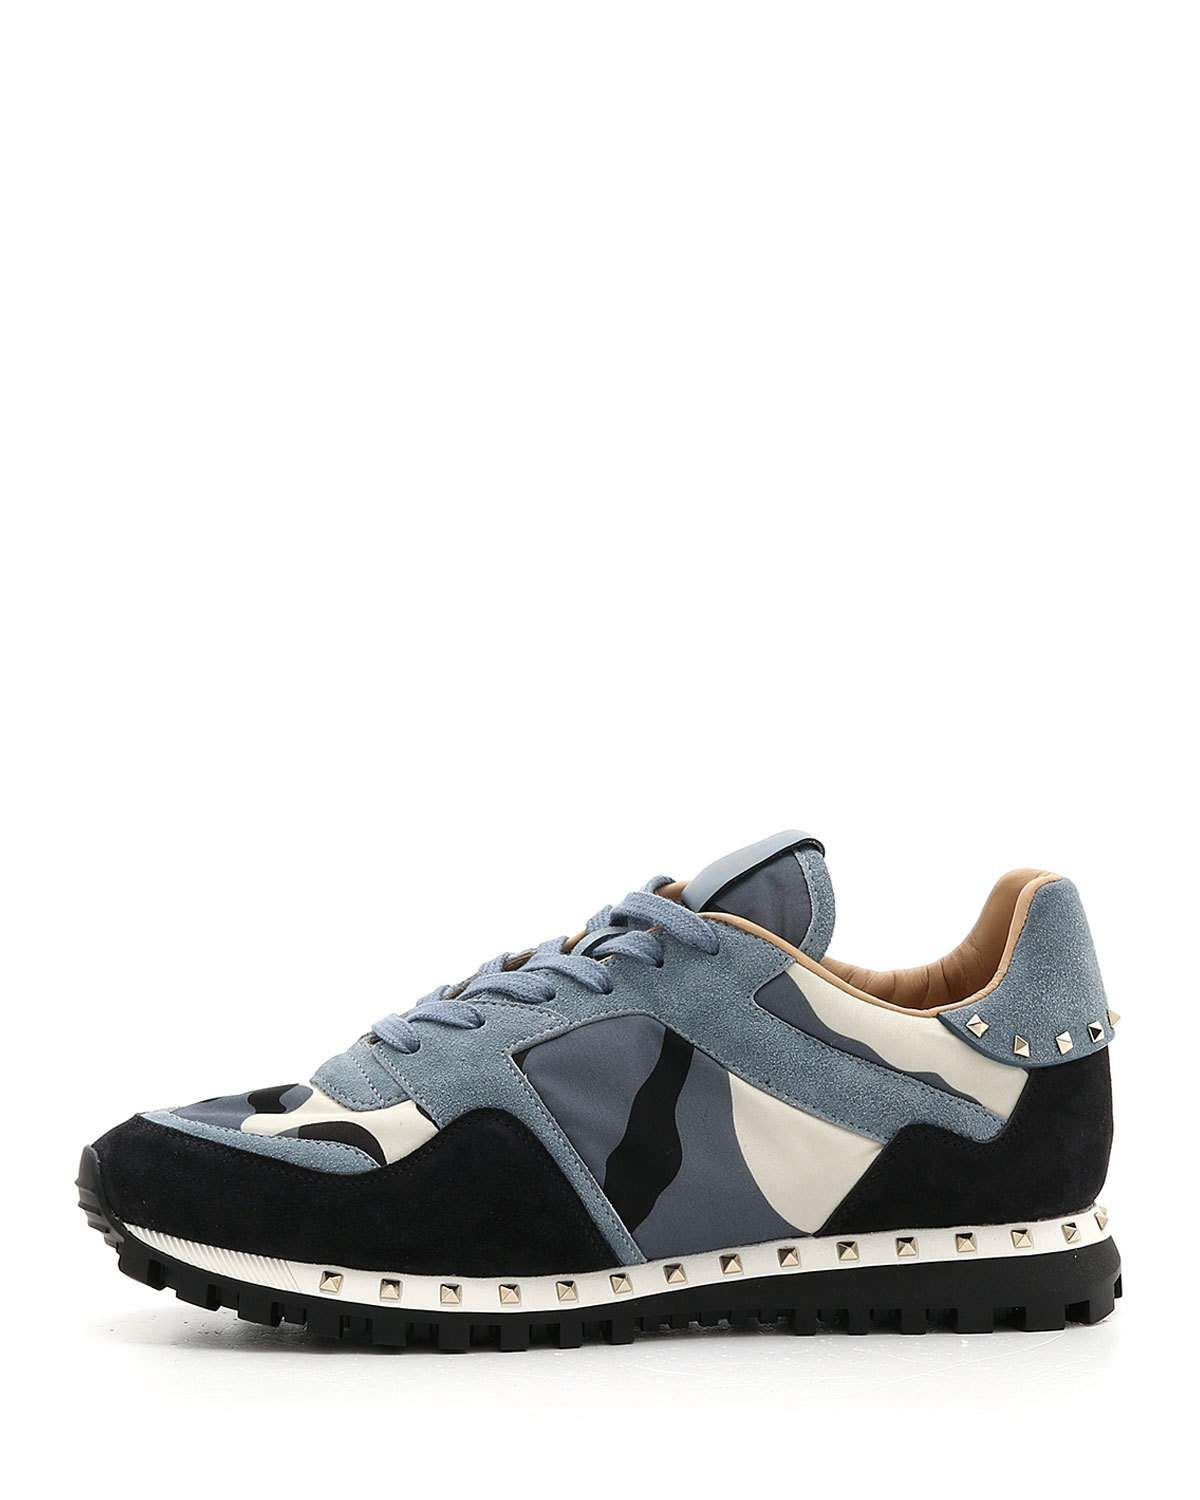 1745a61136206 VALENTINO MEN S ROCKRUNNER CAMO LEATHER SNEAKERS